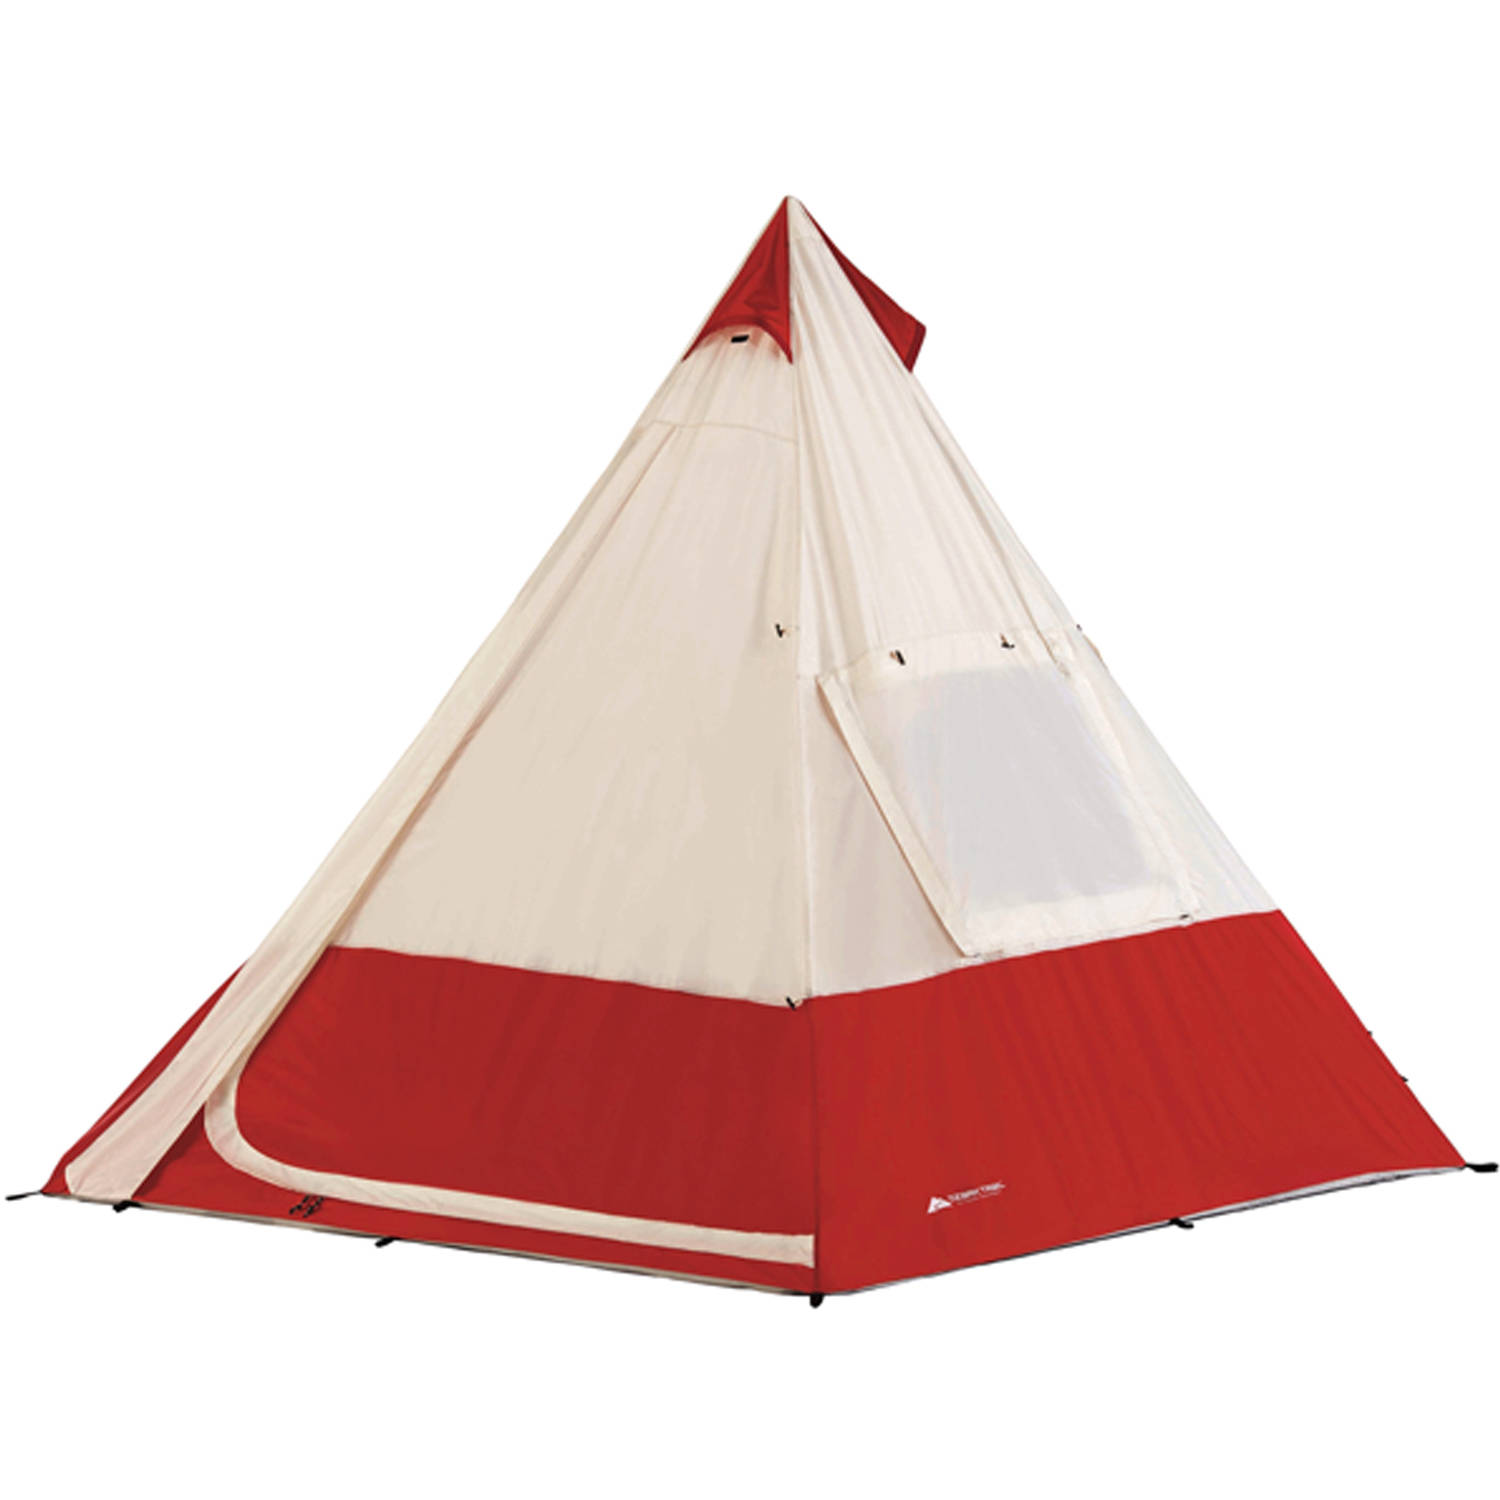 Ozark Trail 7 Person Teepee Tent Image 2 of 3  sc 1 st  Walmart & Ozark Trail 7 Person Teepee Tent - Walmart.com